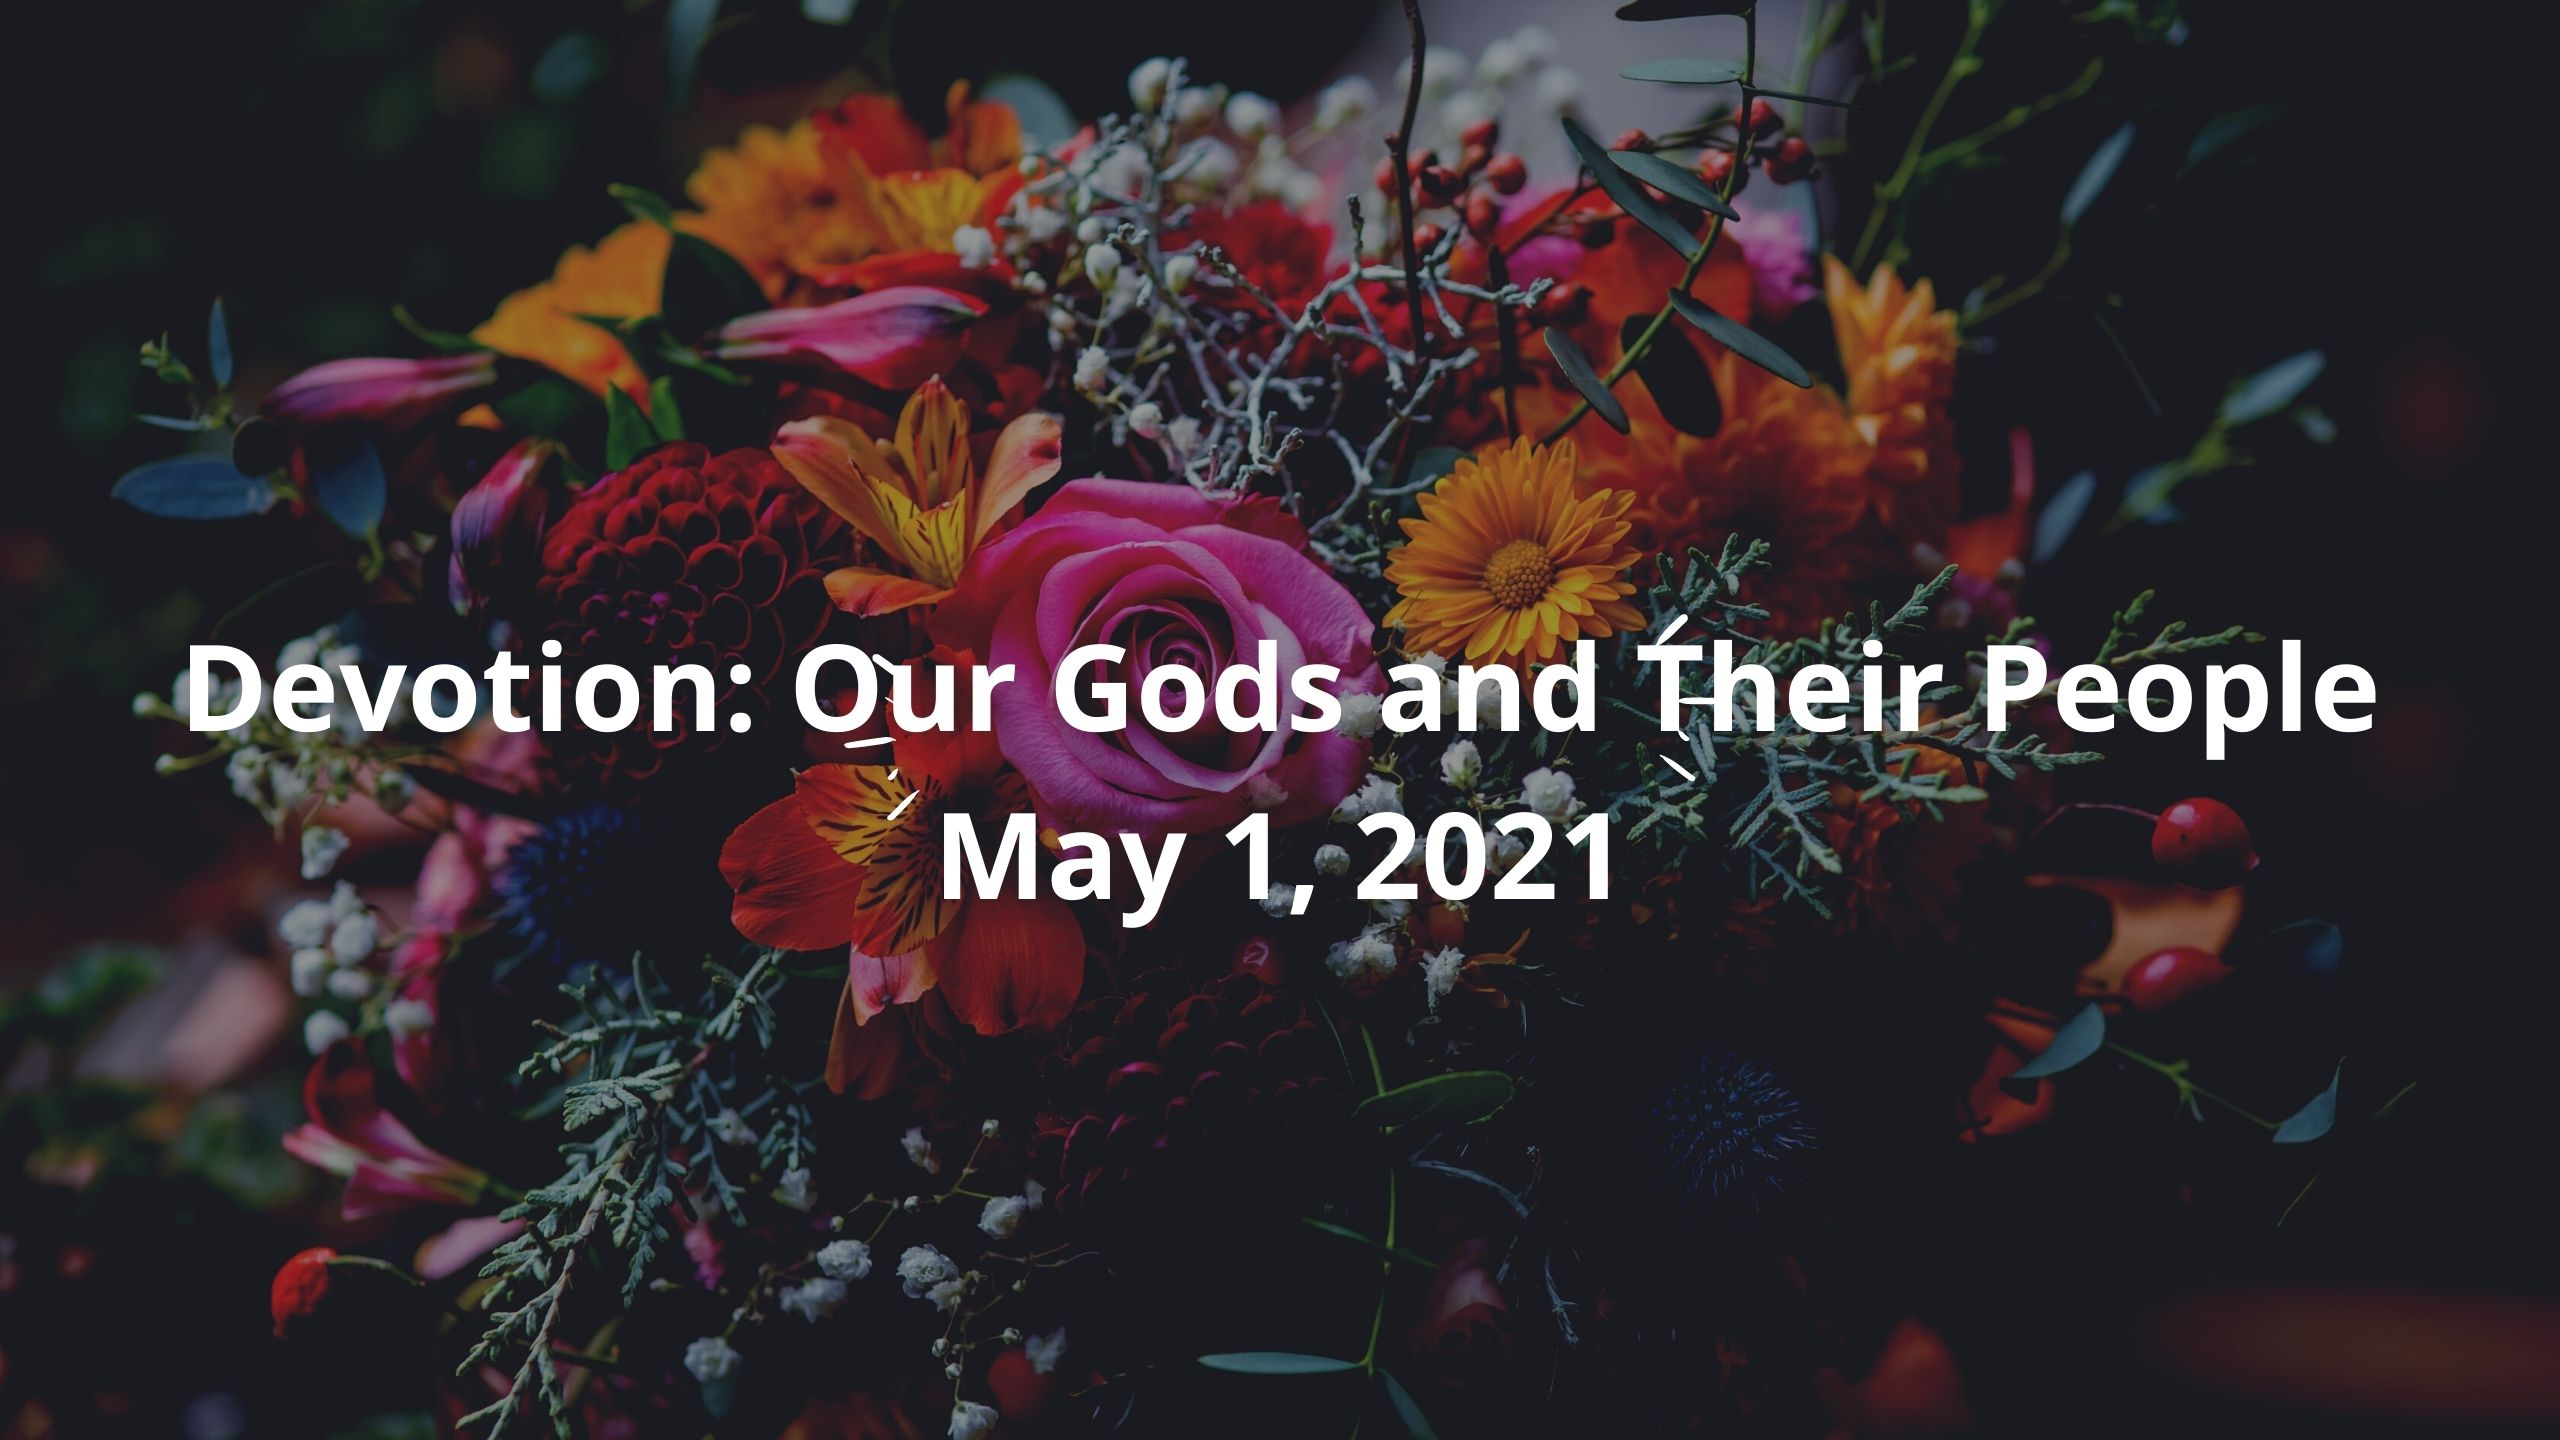 Devotion: Our Gods and Their People May 1, 2021. Dark banner with vibrant flowers including roses and rosemary.